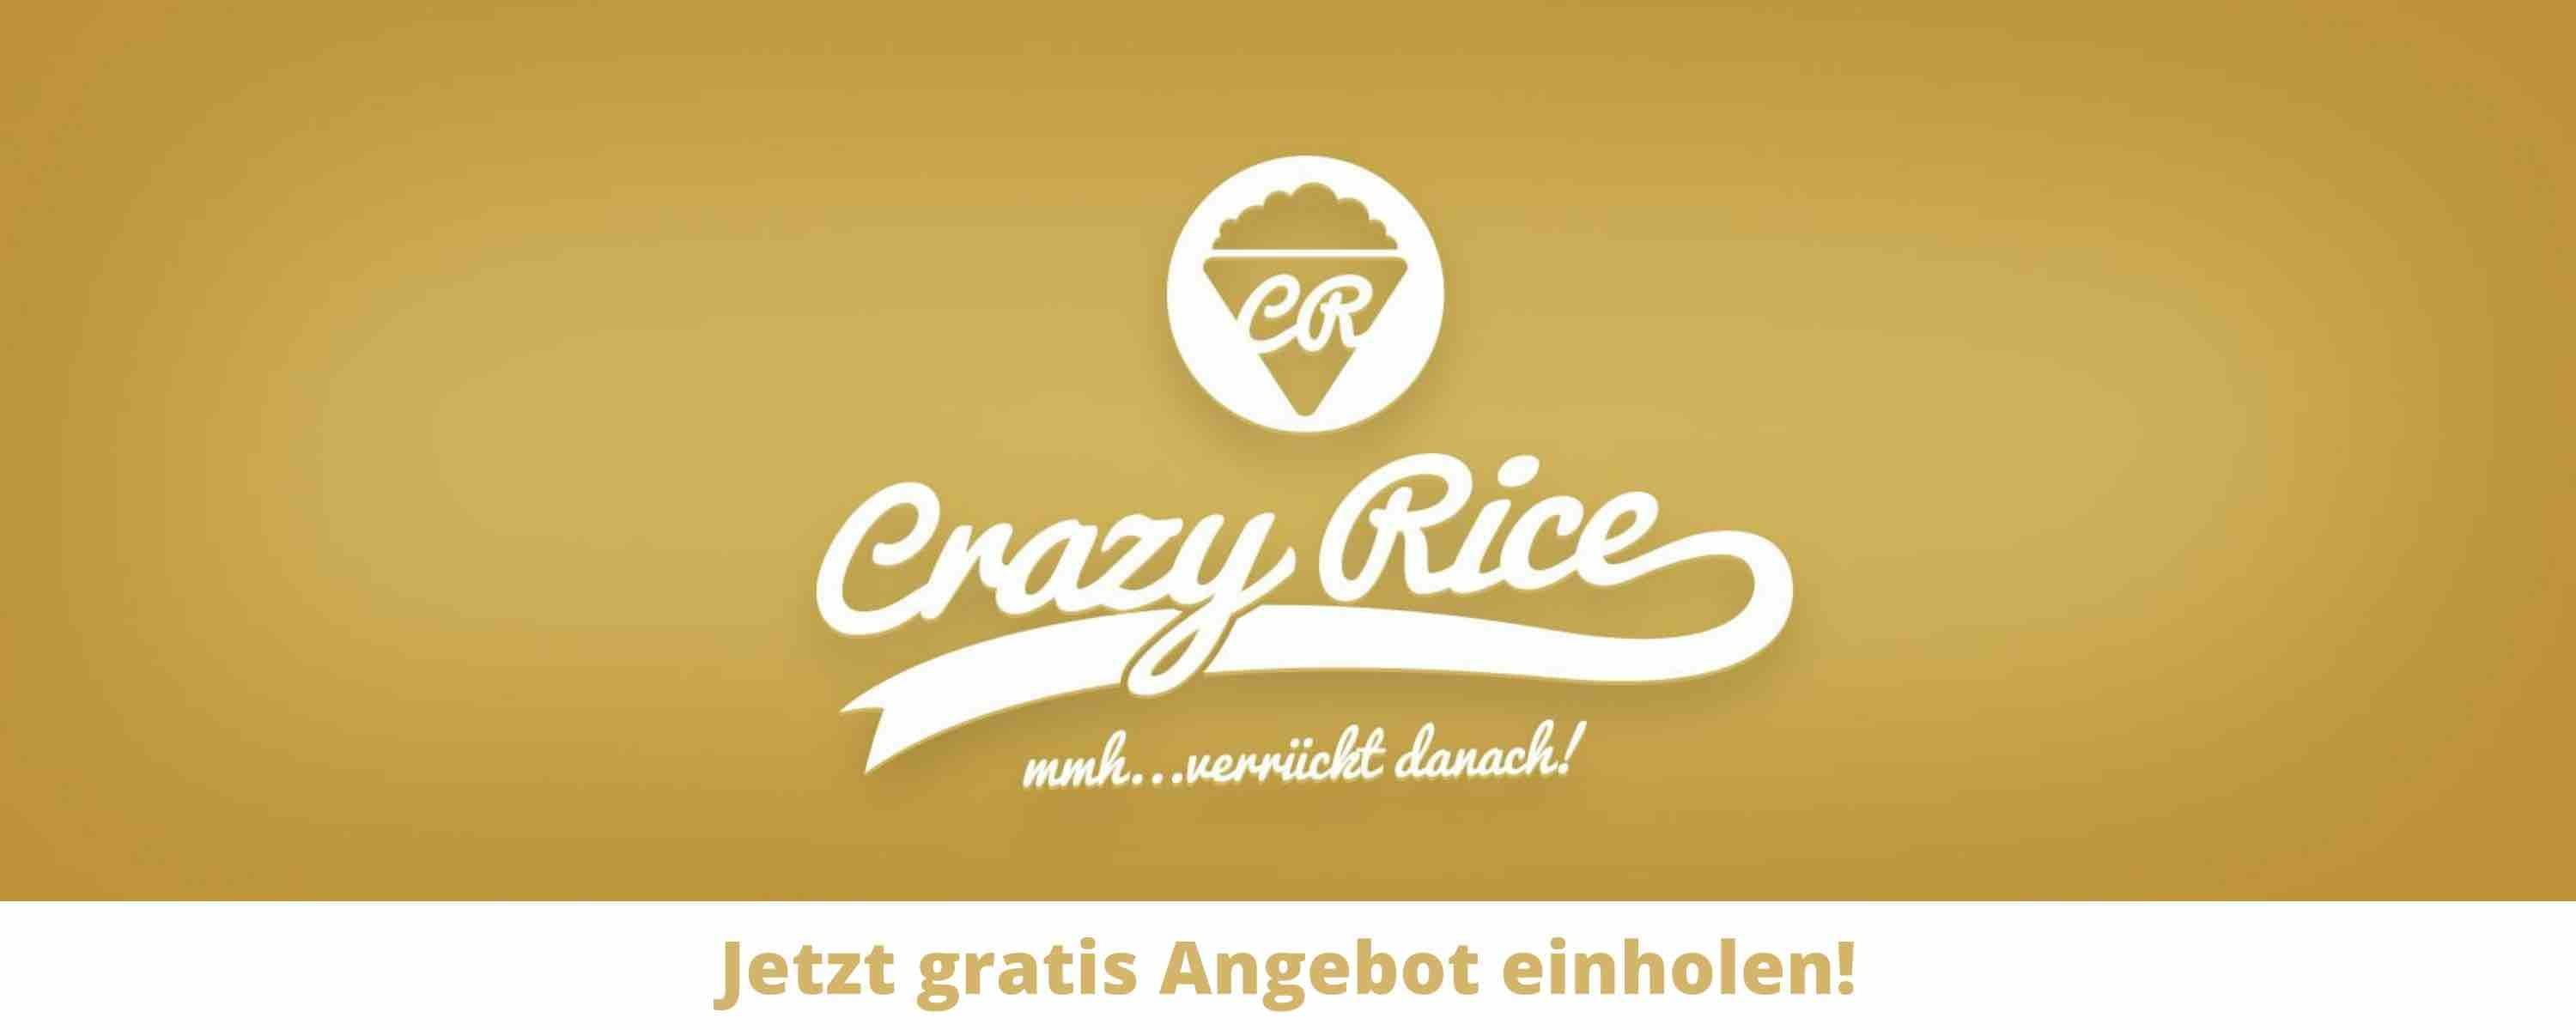 Crazy Rice Catering Leipzig